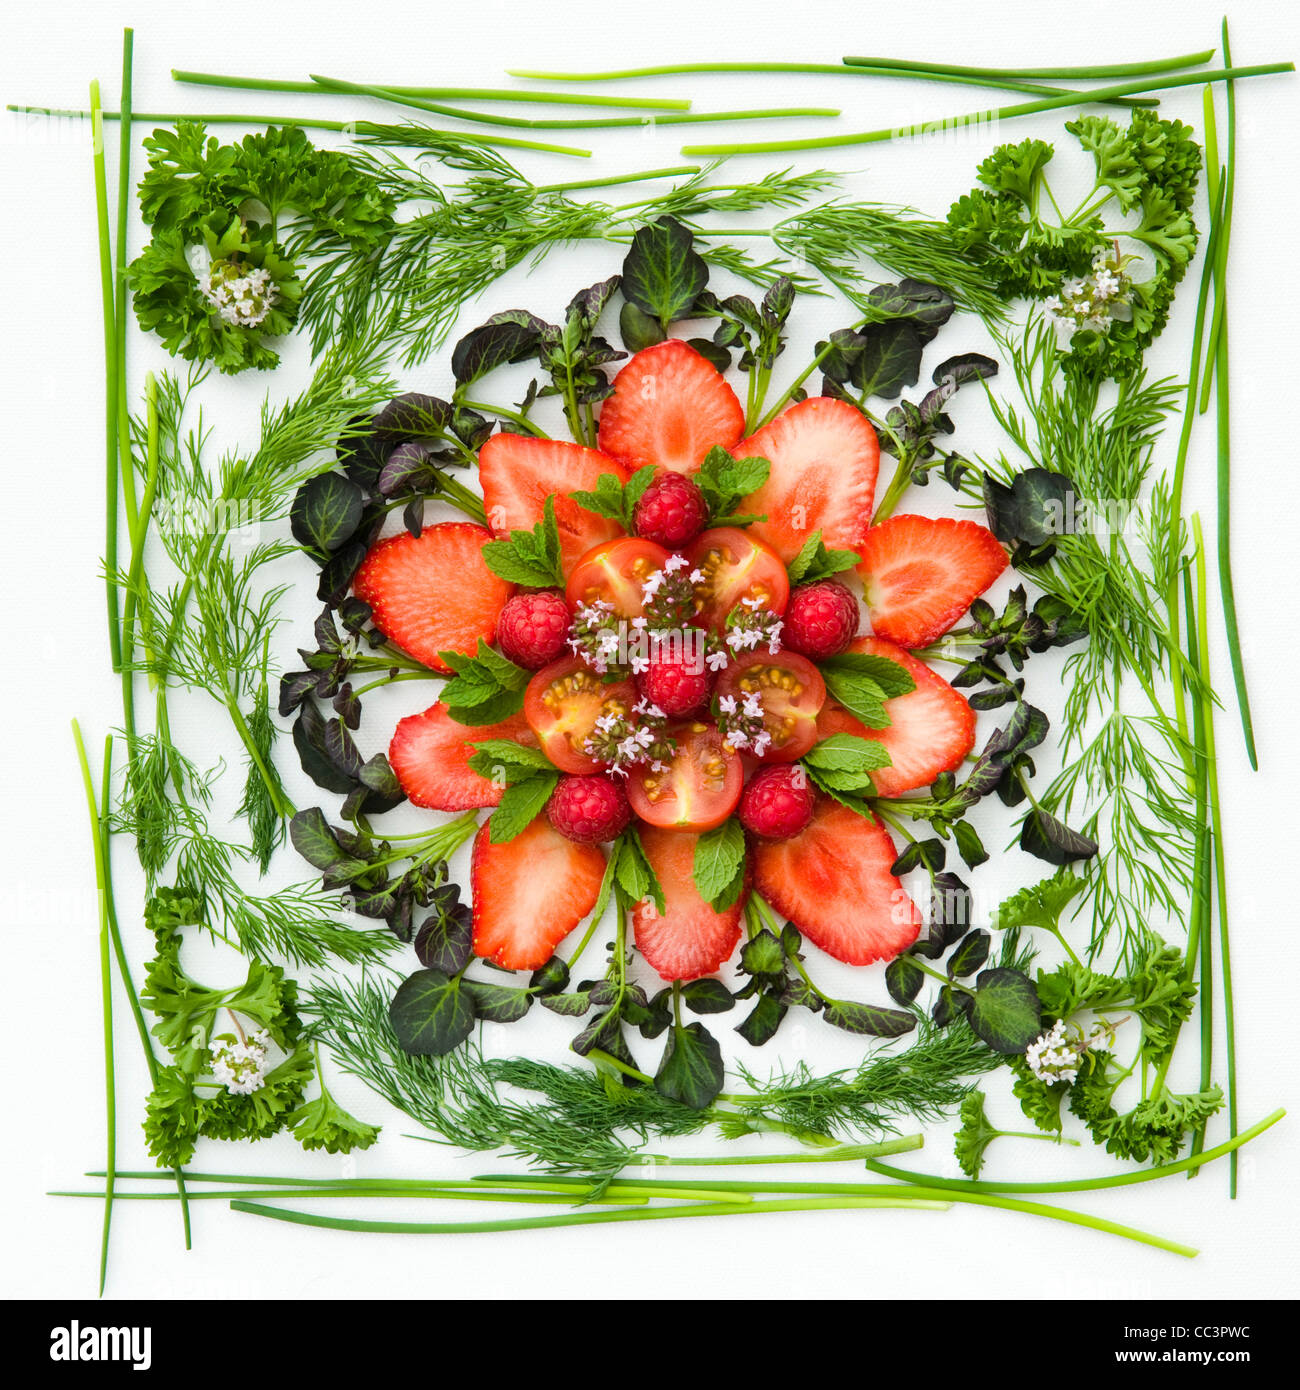 English fruit, herbs and red watercress combined to make a floral platter - Stock Image